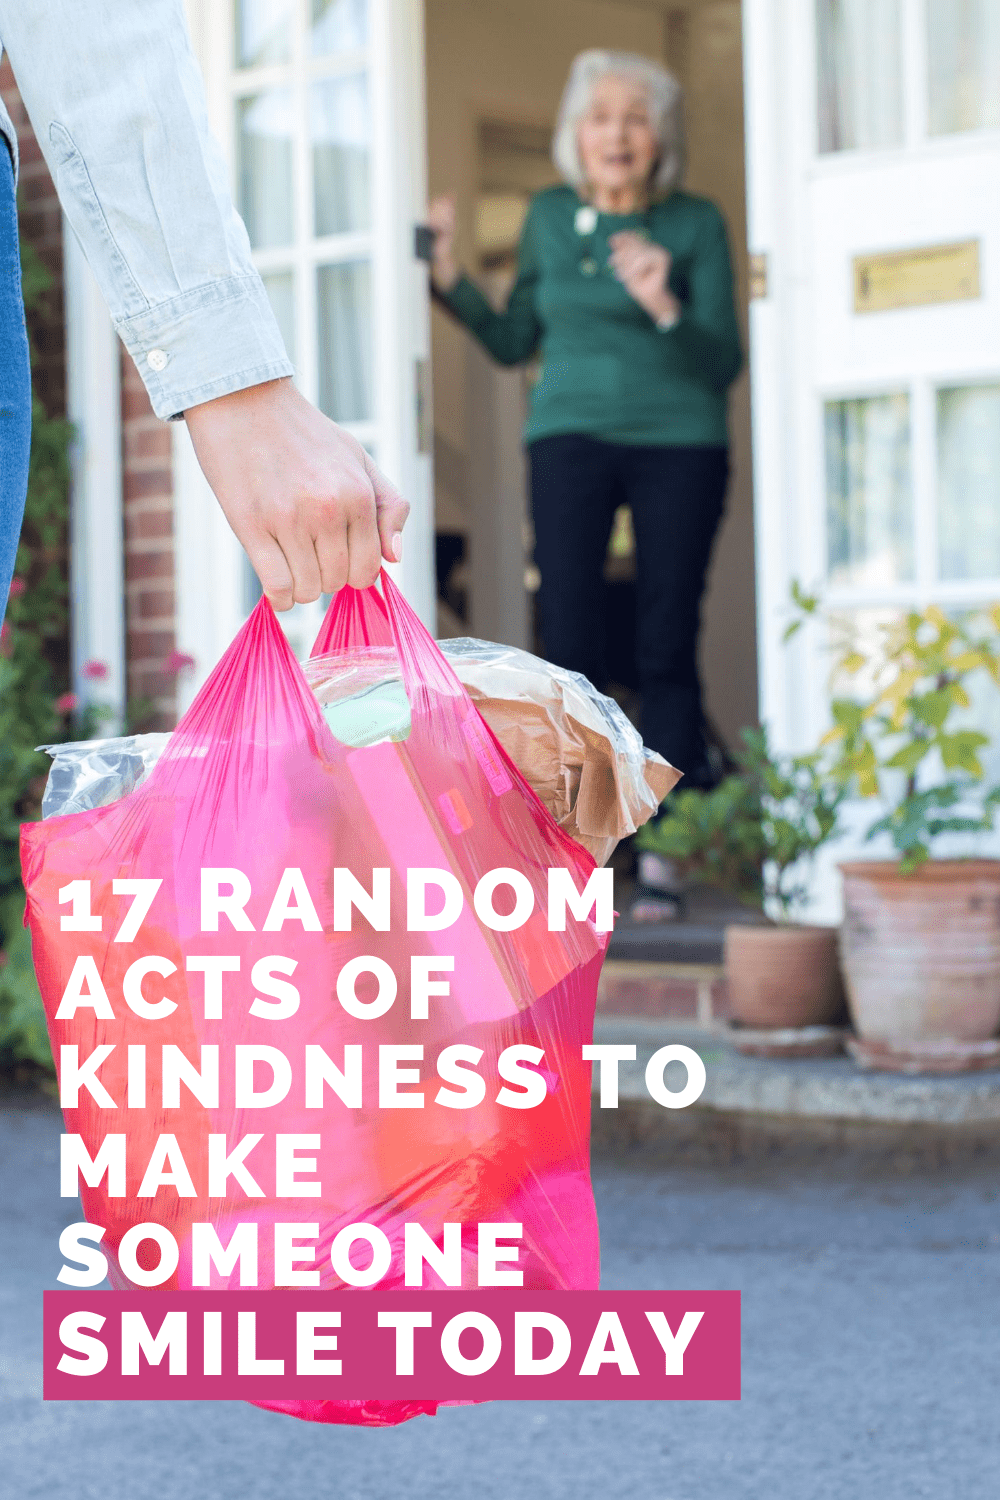 Check out these random acts of kindness ideas with free printables to help make someone smile today